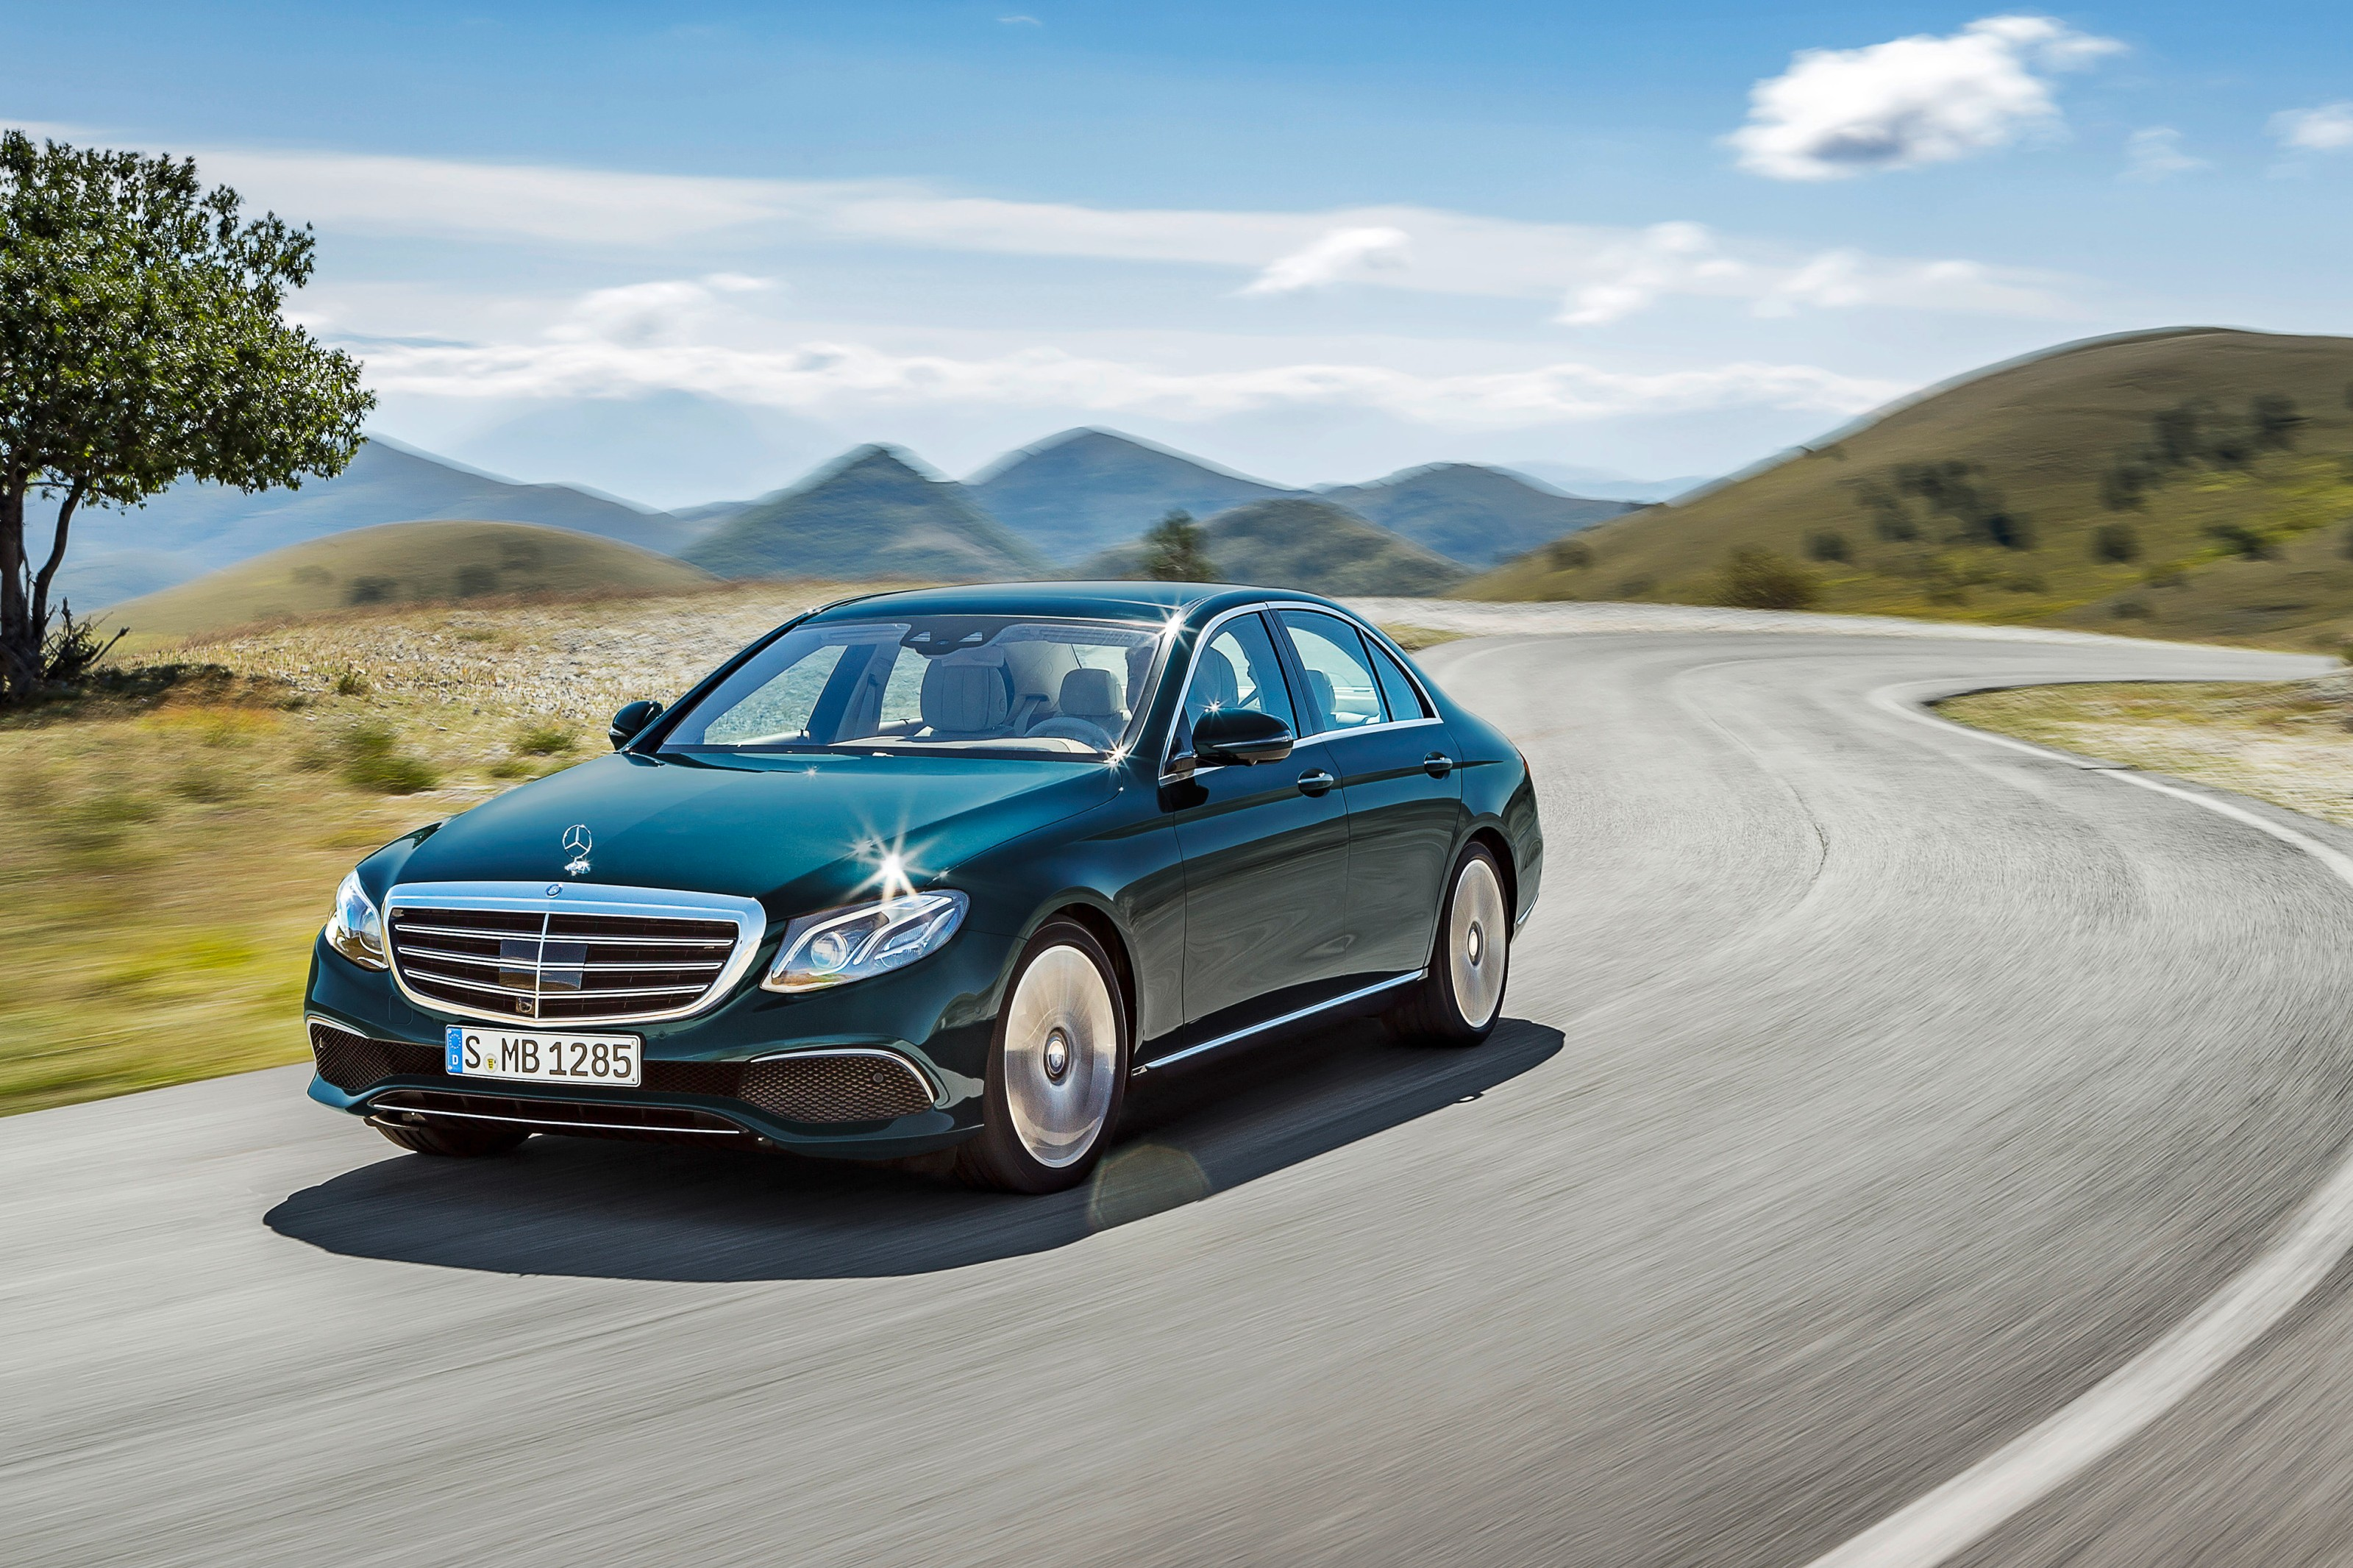 Say hello to the new E-Class